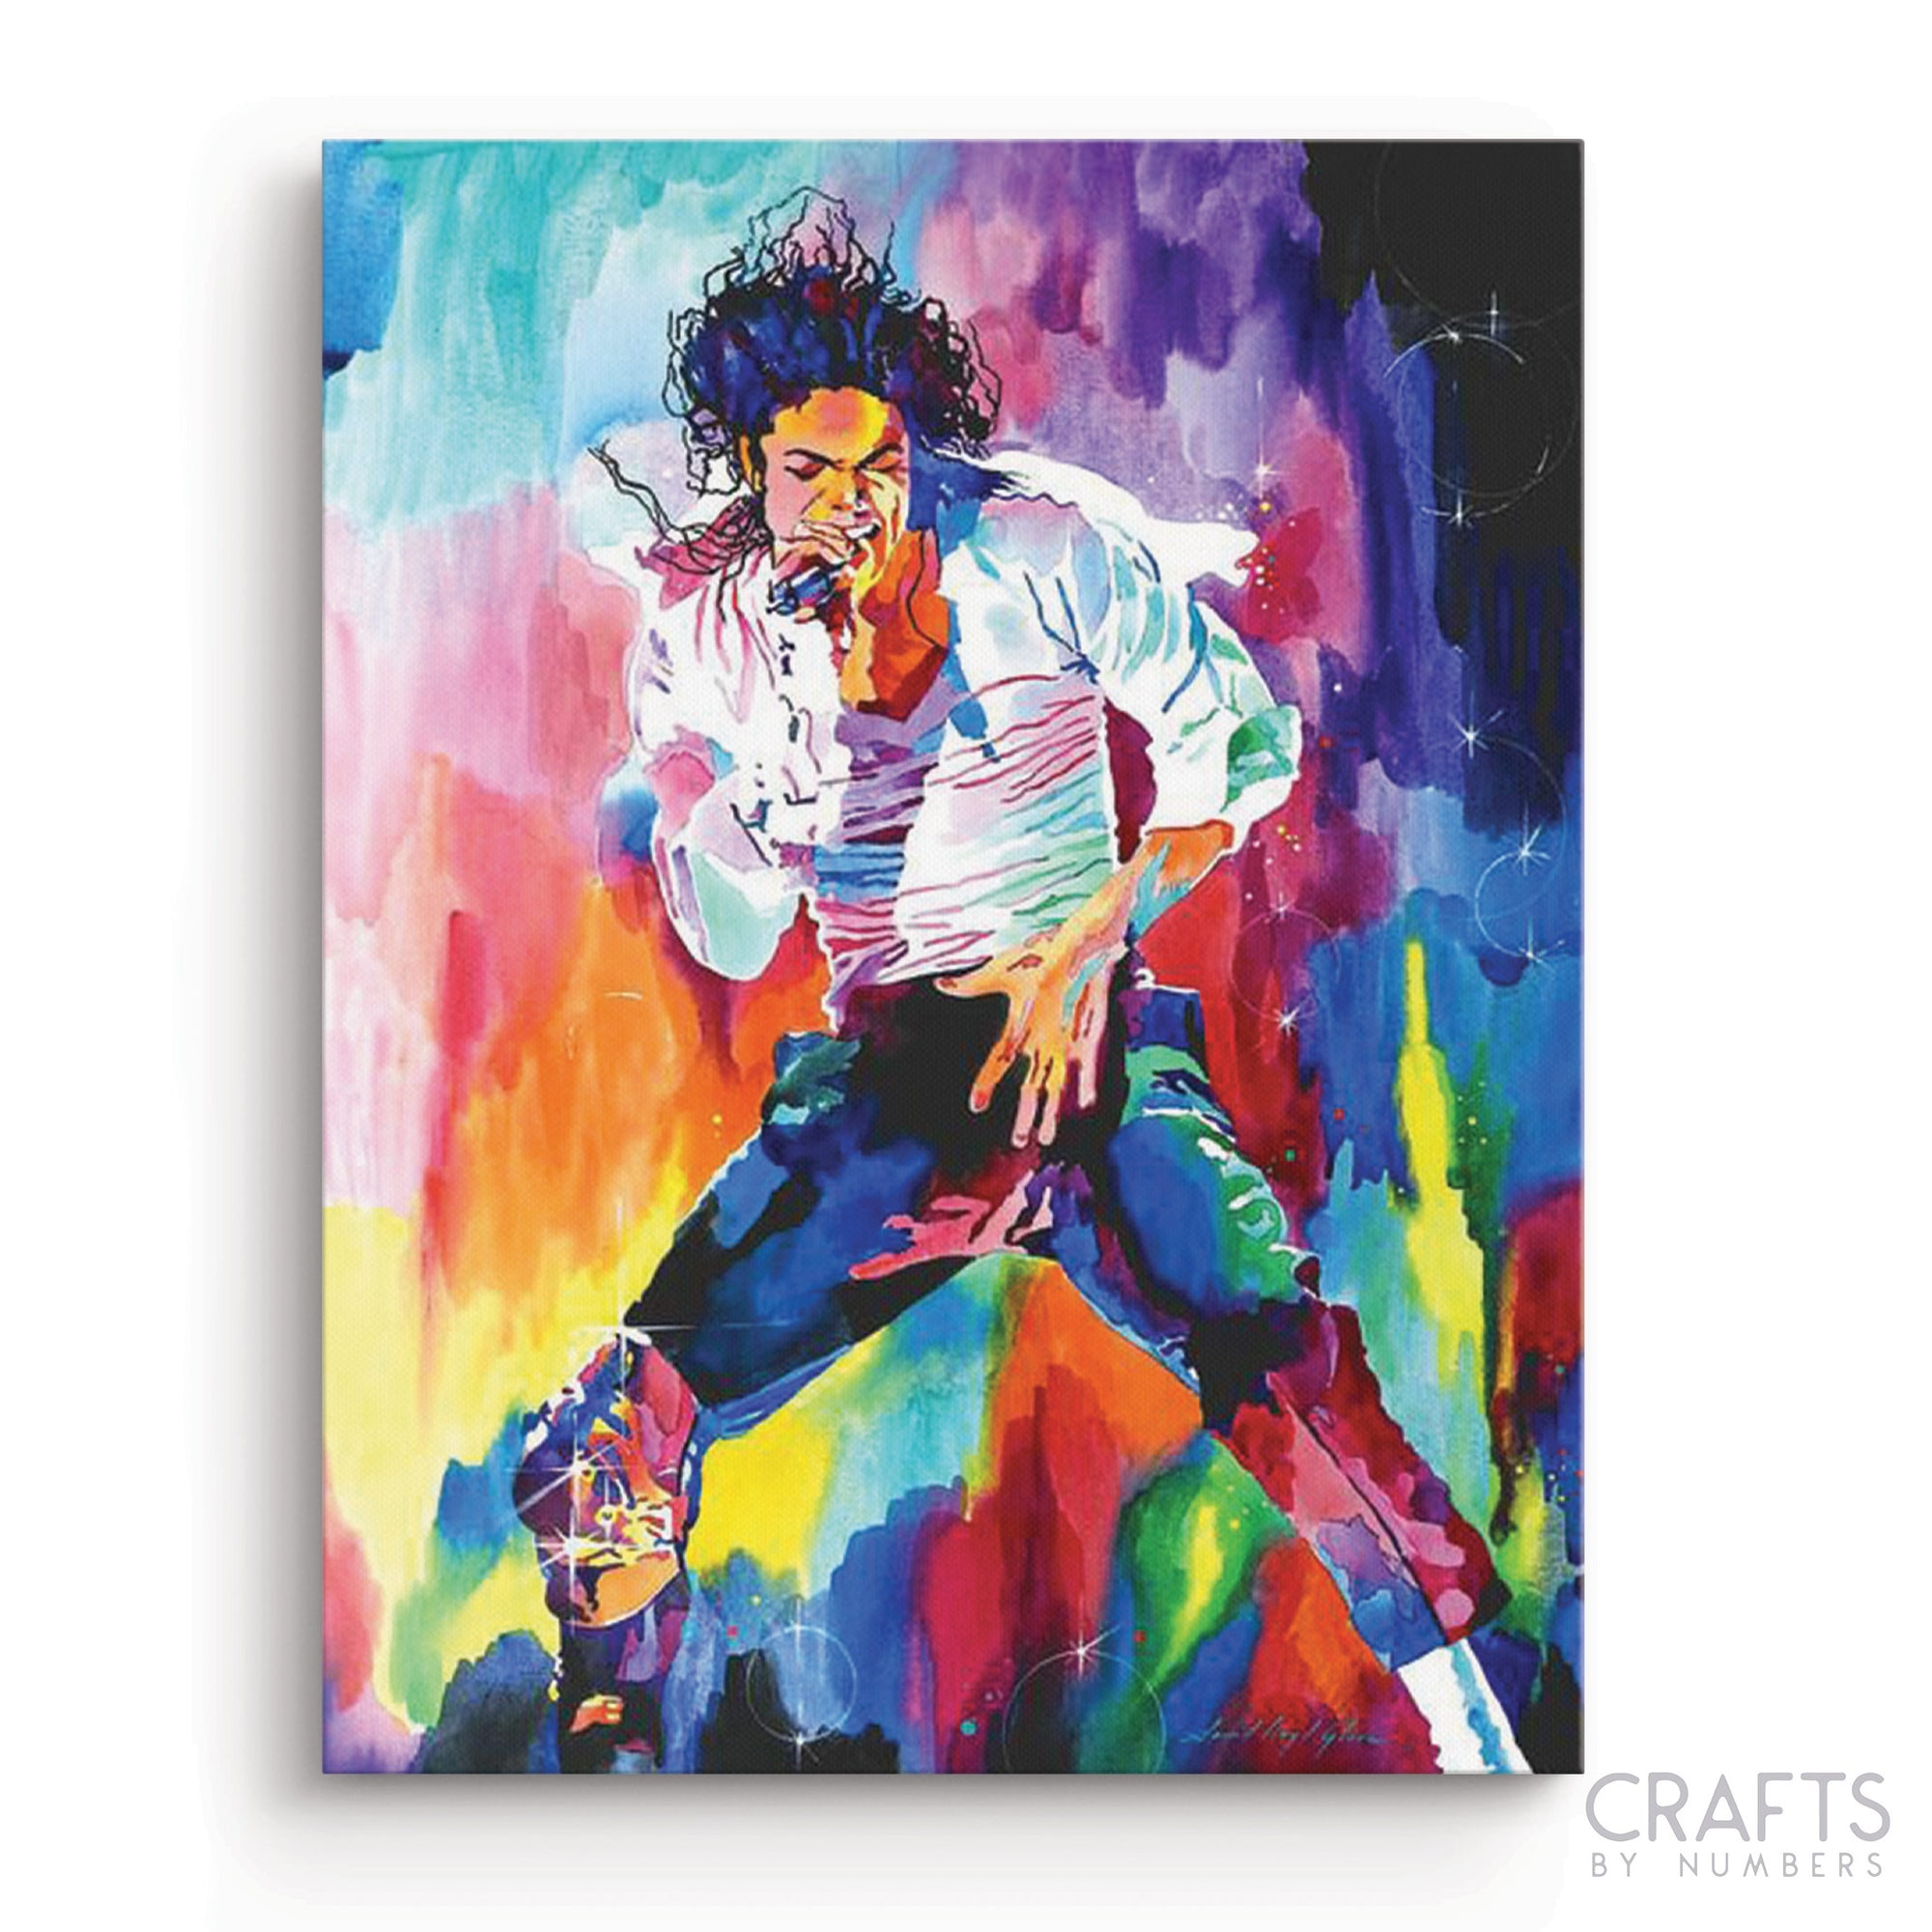 Iconic Painting of Michael Jackson paint by numbers canvas for adults from paint pots